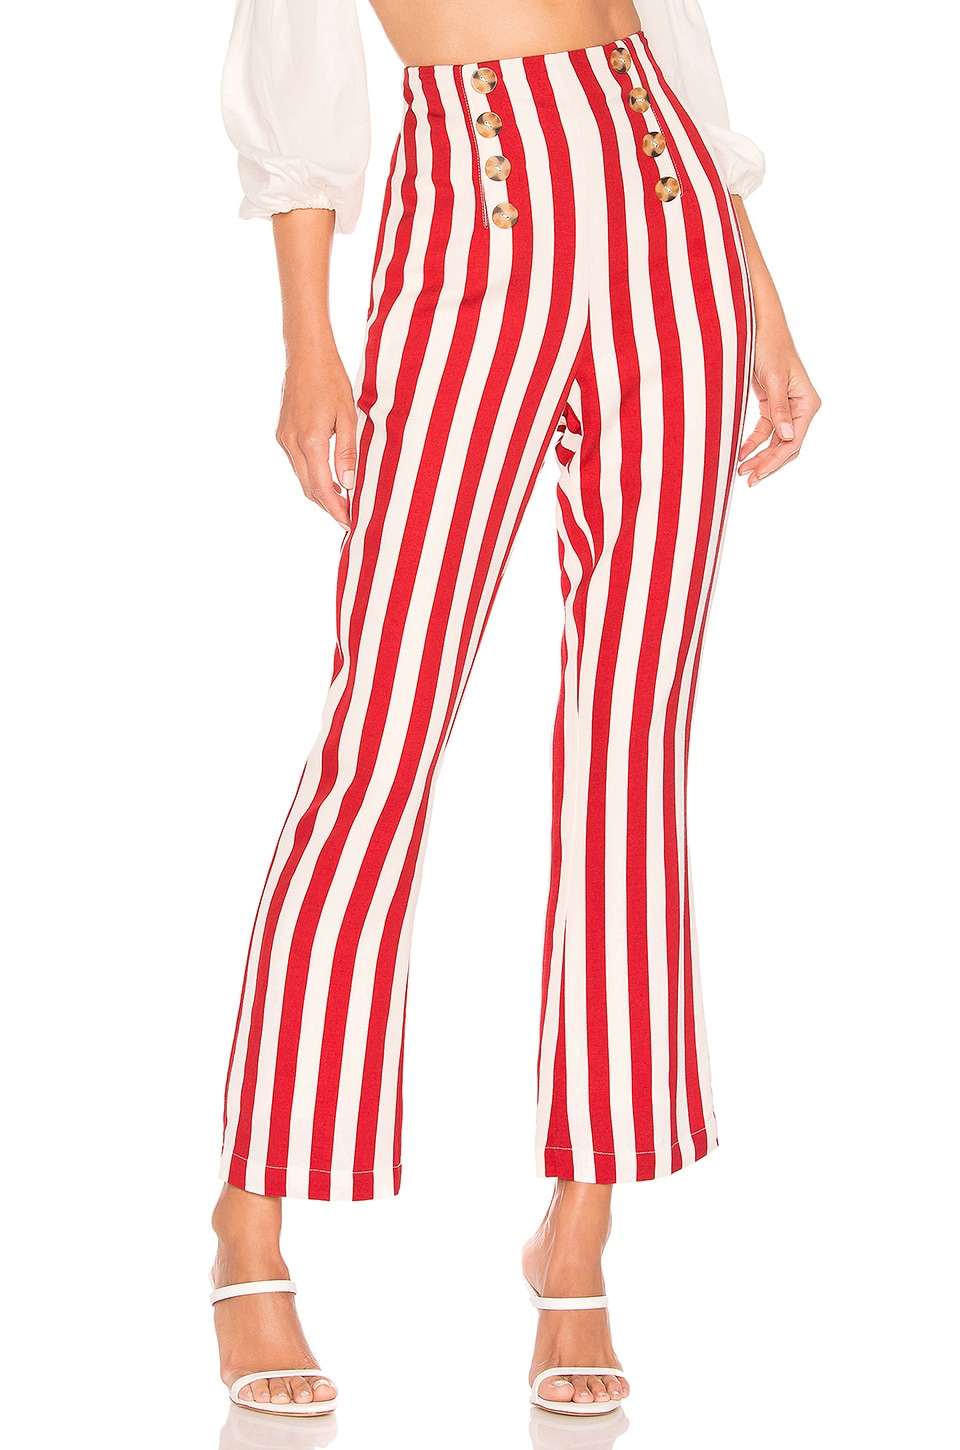 House of Harlow 1960 X REVOLVE Morris Pant in Red & White Stripe